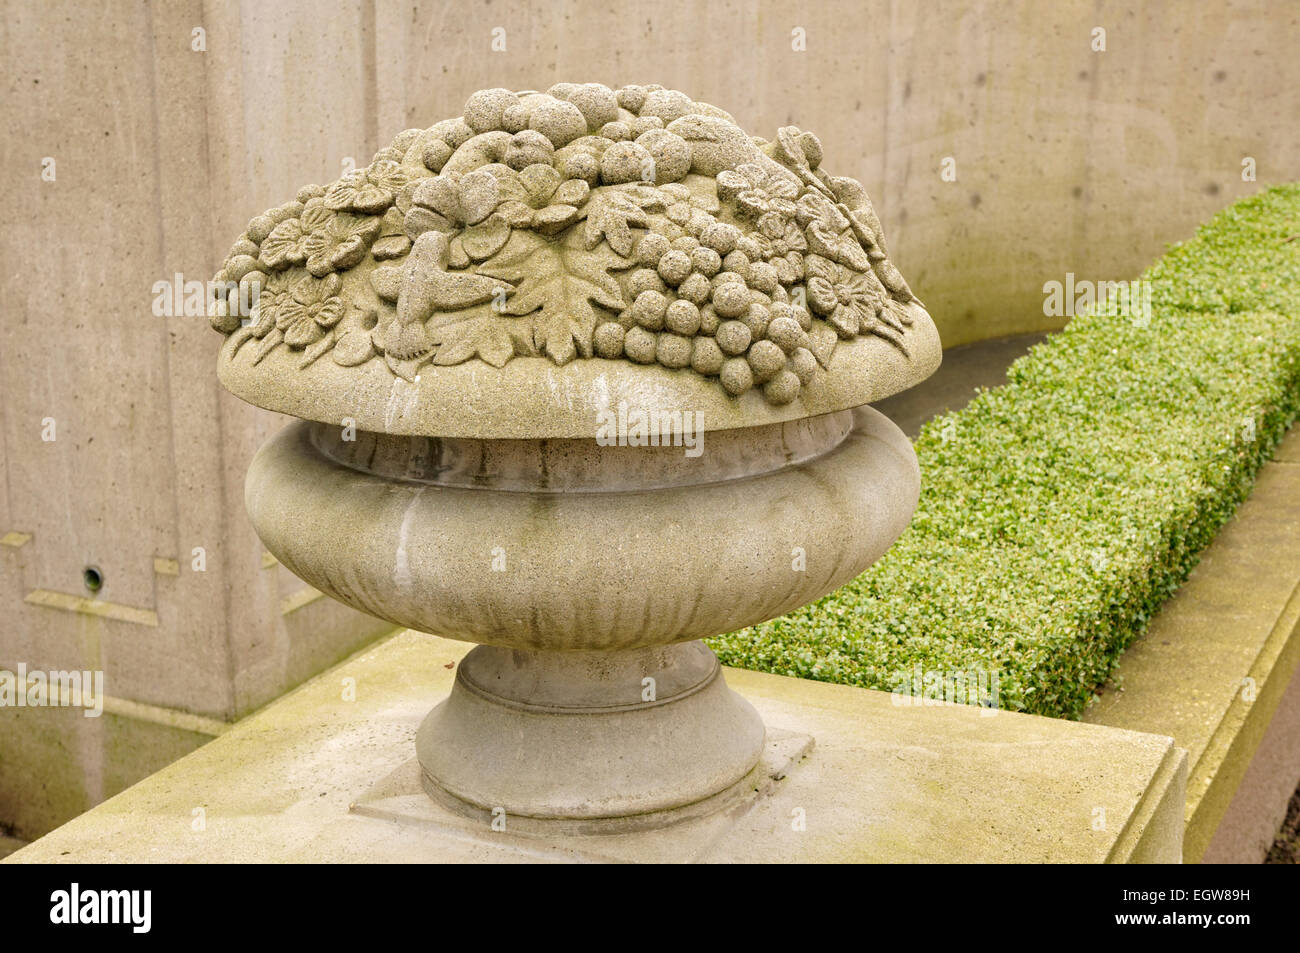 Stone sculpture of a chalice filled with fruit - Stock Image